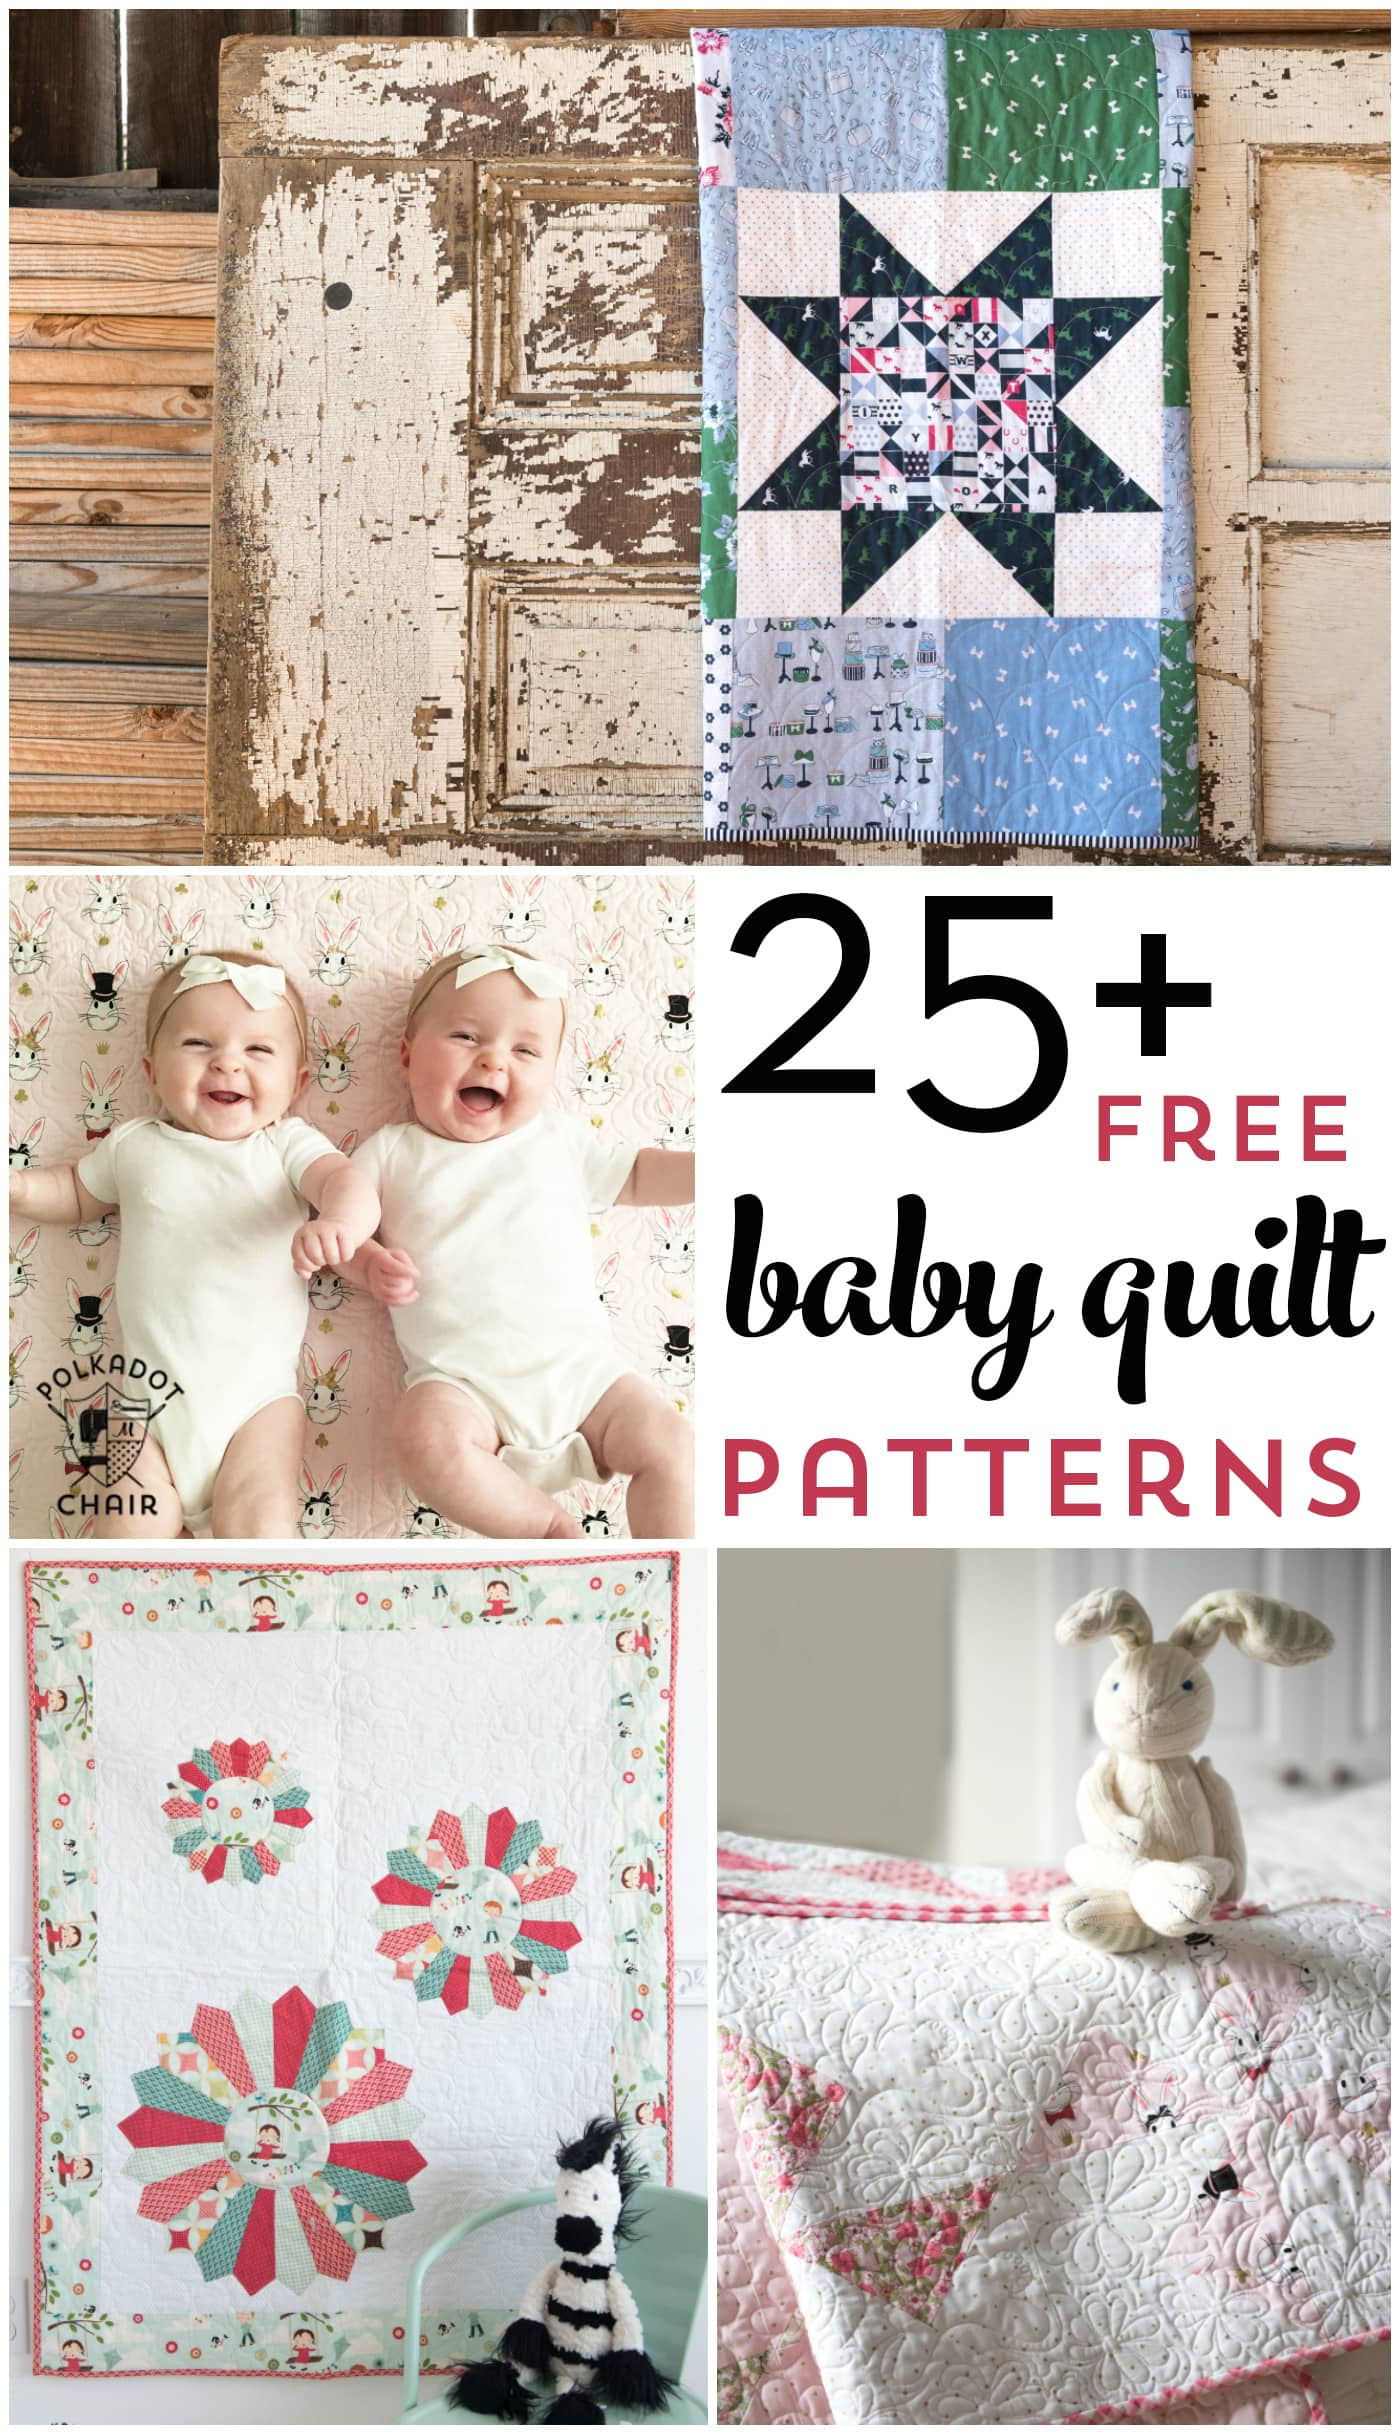 More than 25 free baby quilt patterns.